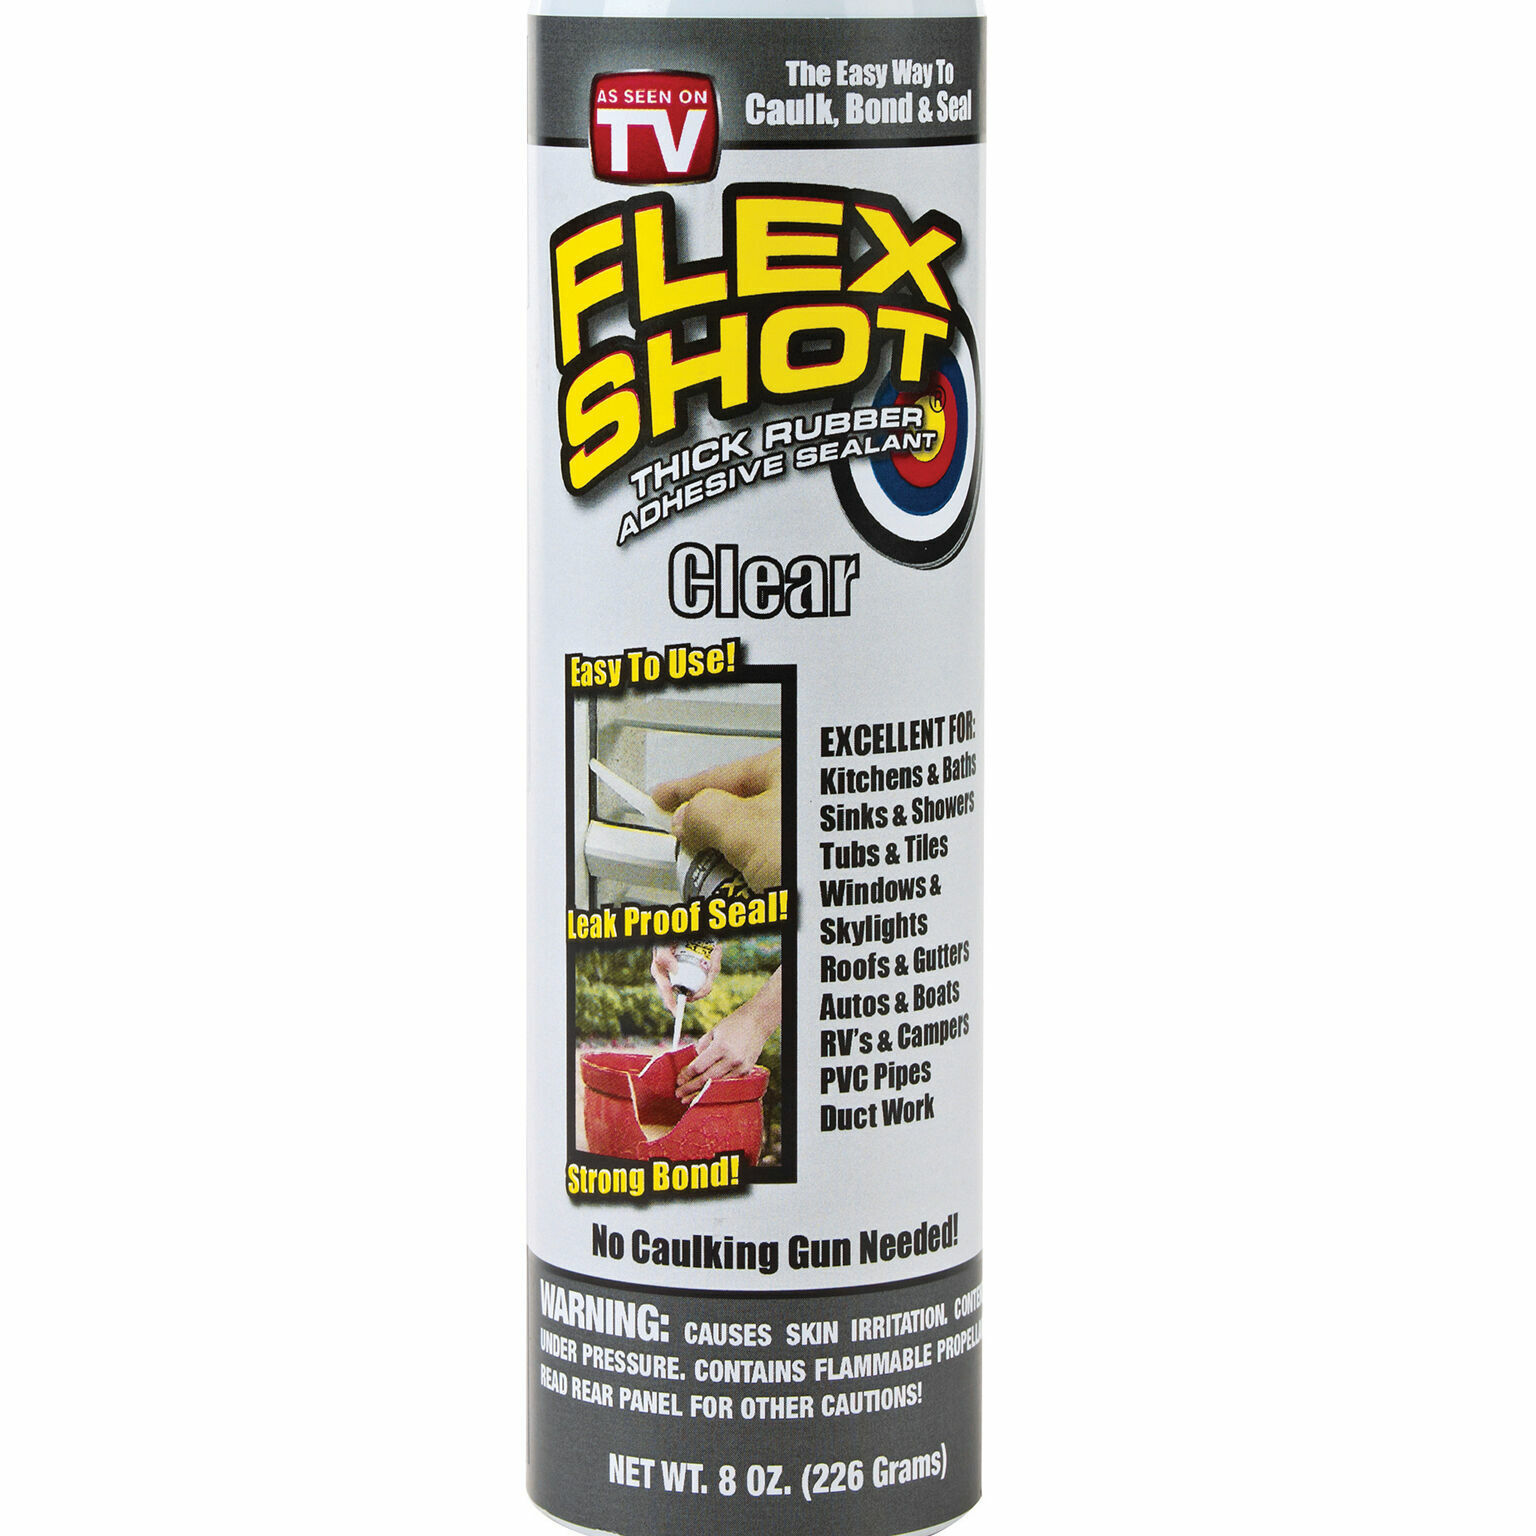 1 JUMBO Flex Shot 8oz CLEAR Rubber Sealant  As Seen On TV  B